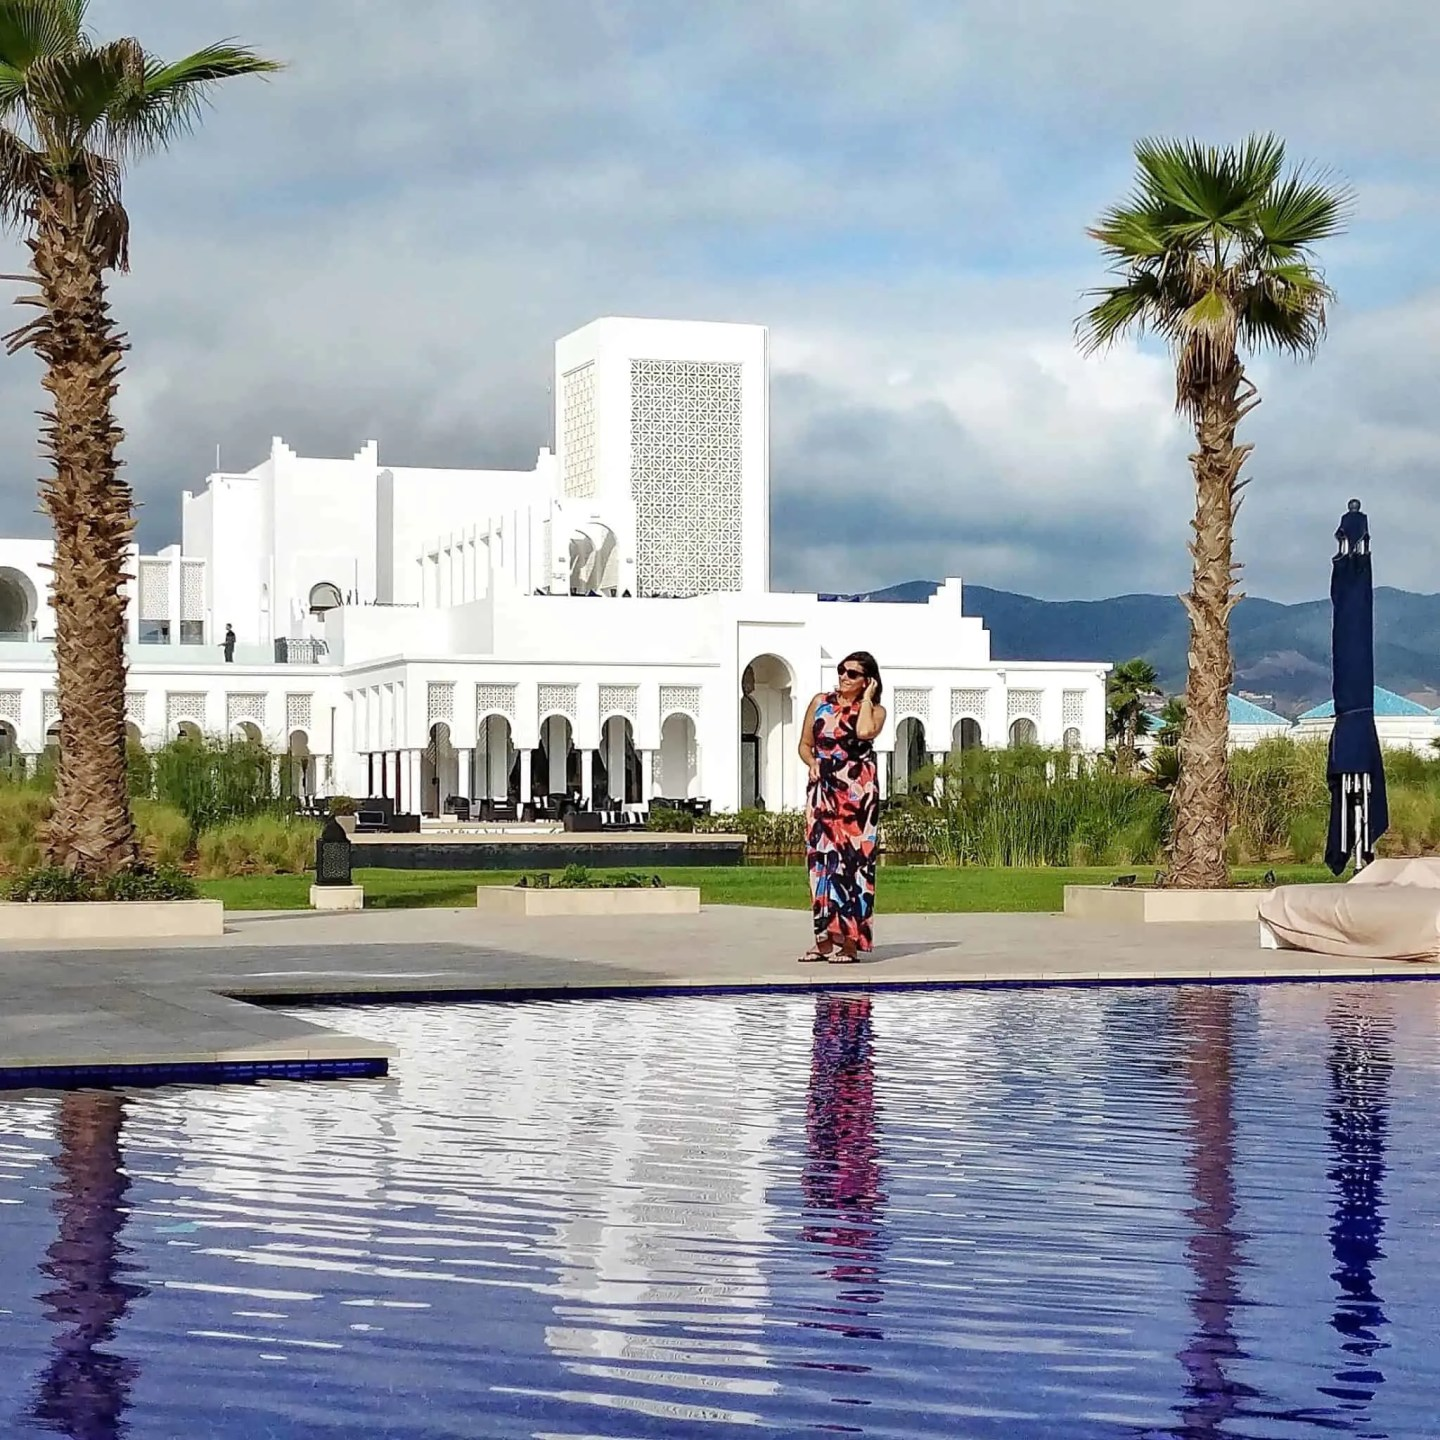 OUR STAY AT BANYAN TREE TAMOUDA BAY MOROCCO